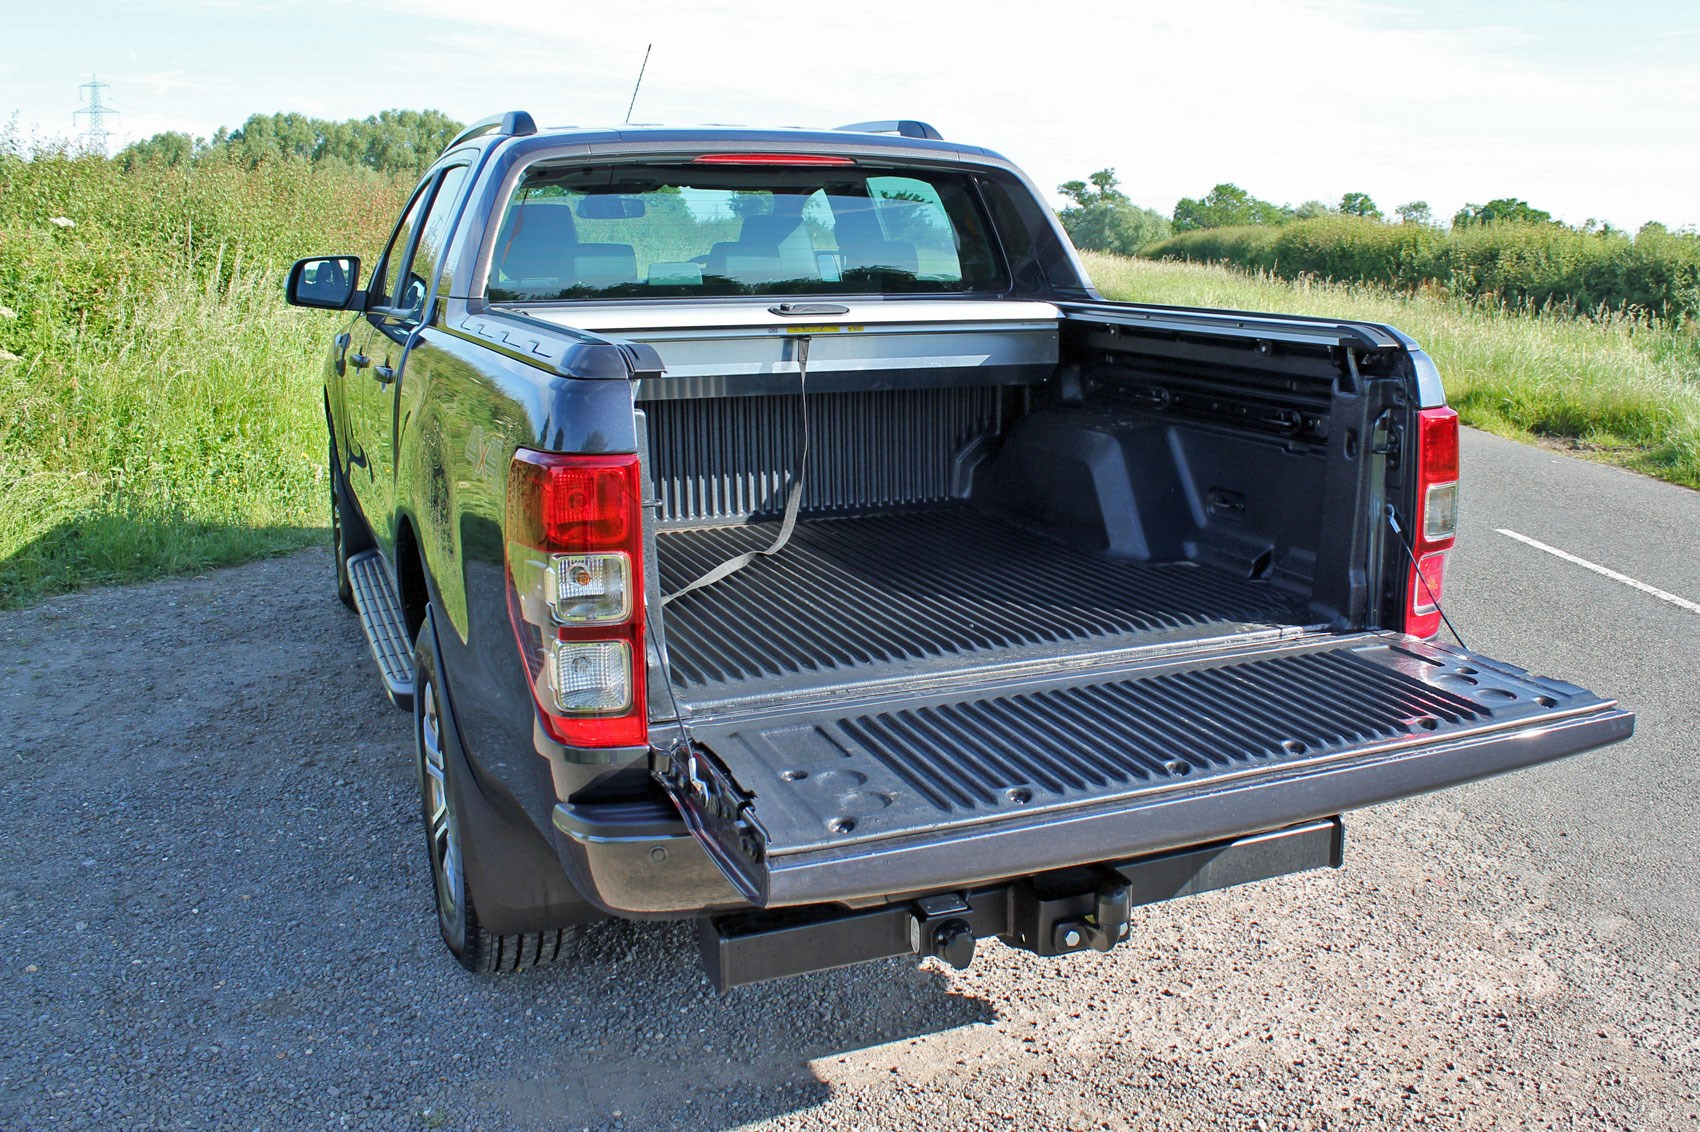 Ford Ranger Wildtrak Euro 6 review - load area